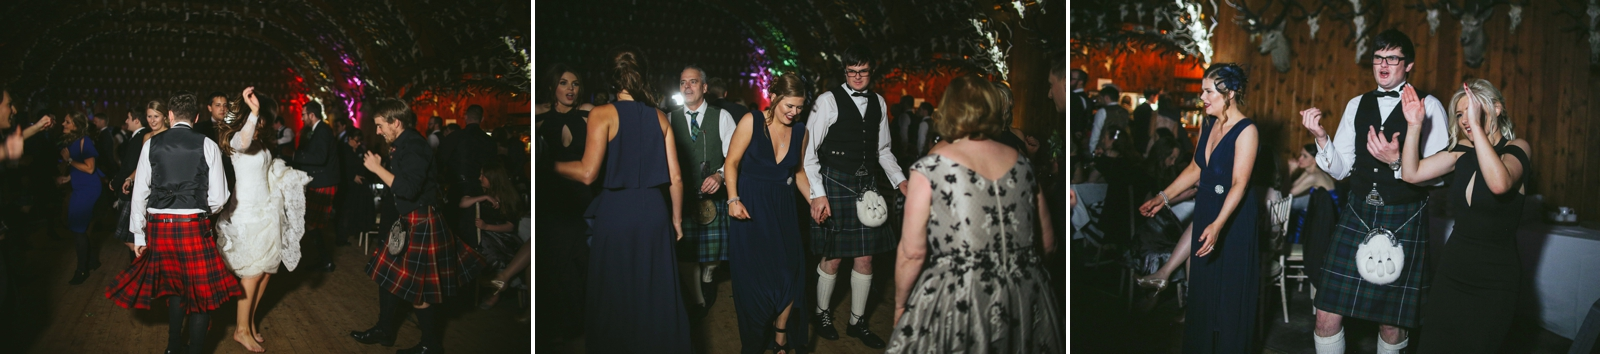 StephColinWedding-817_stomped.jpg